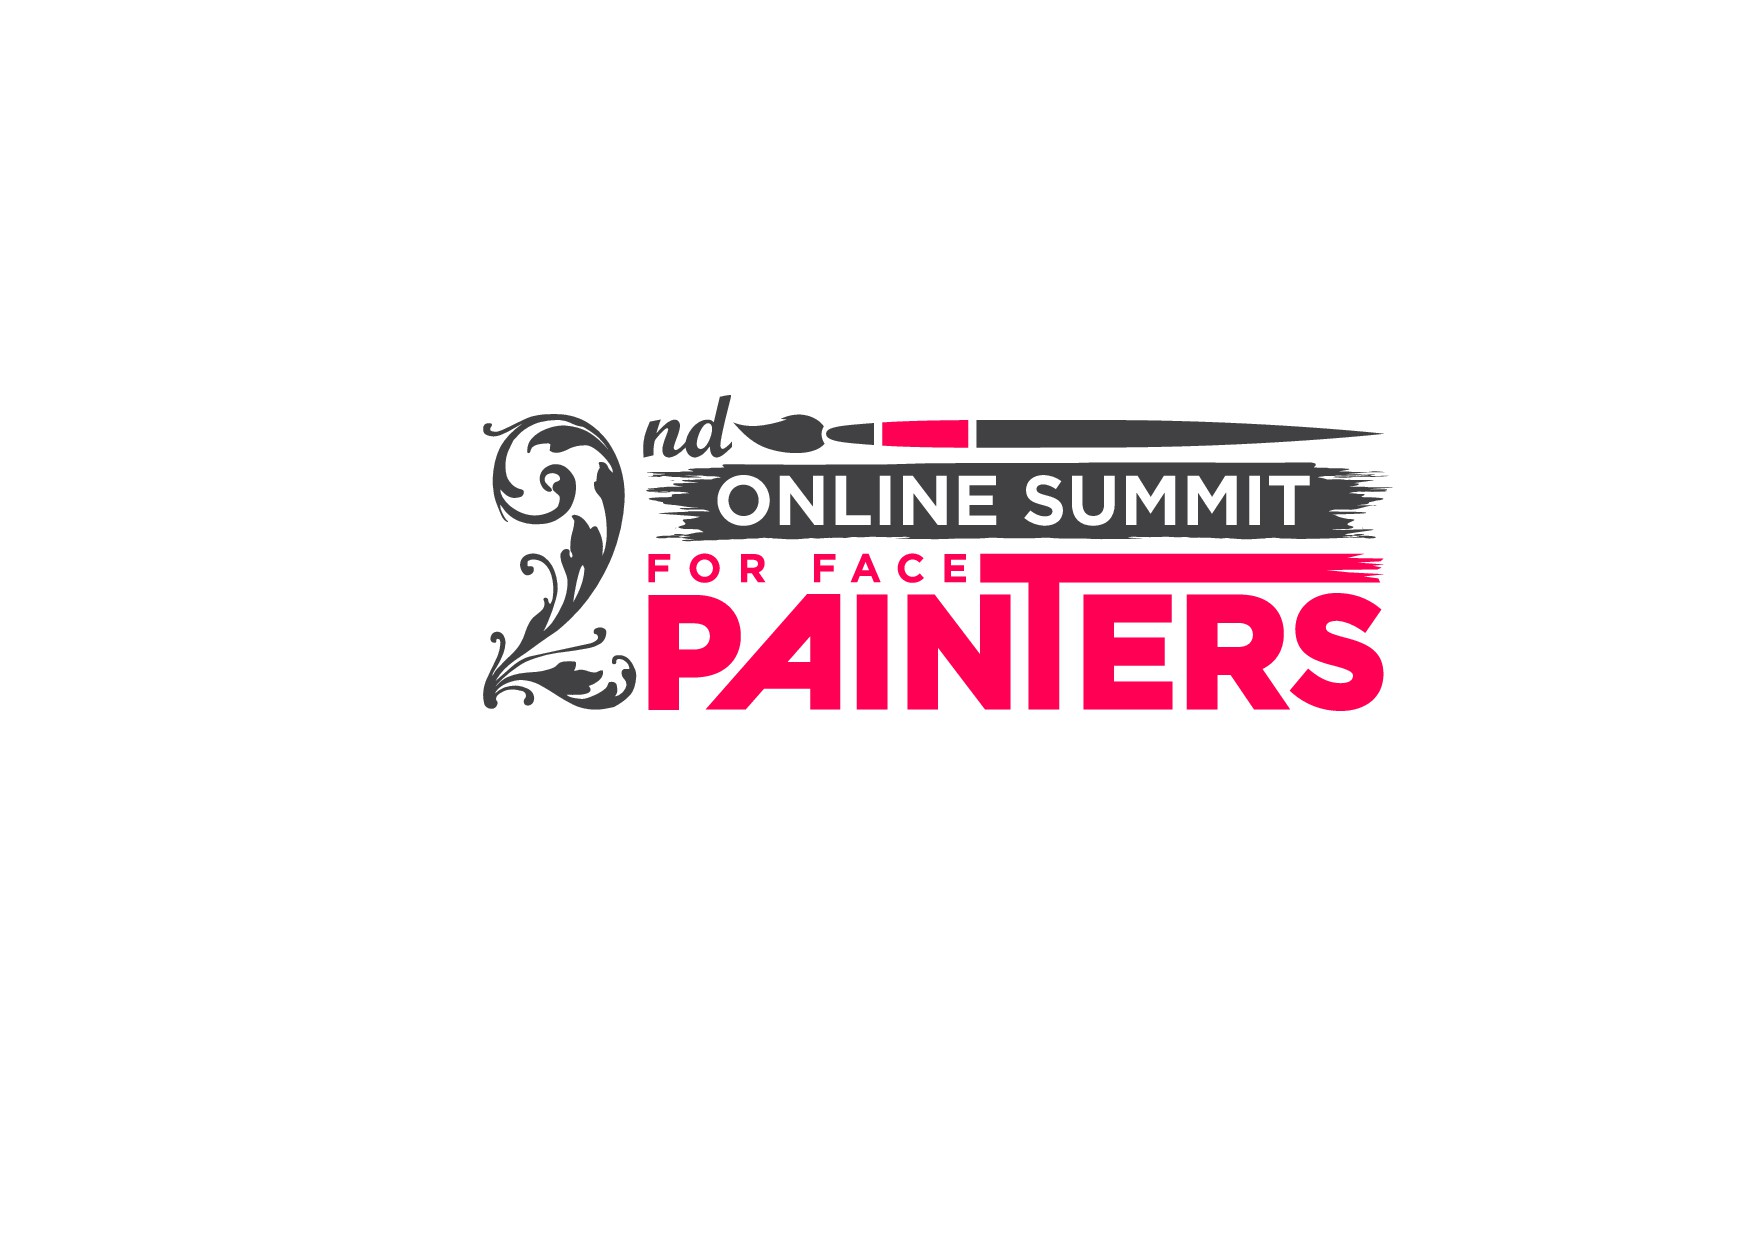 Design a logo for teaching the art of face painting professionally in an online event